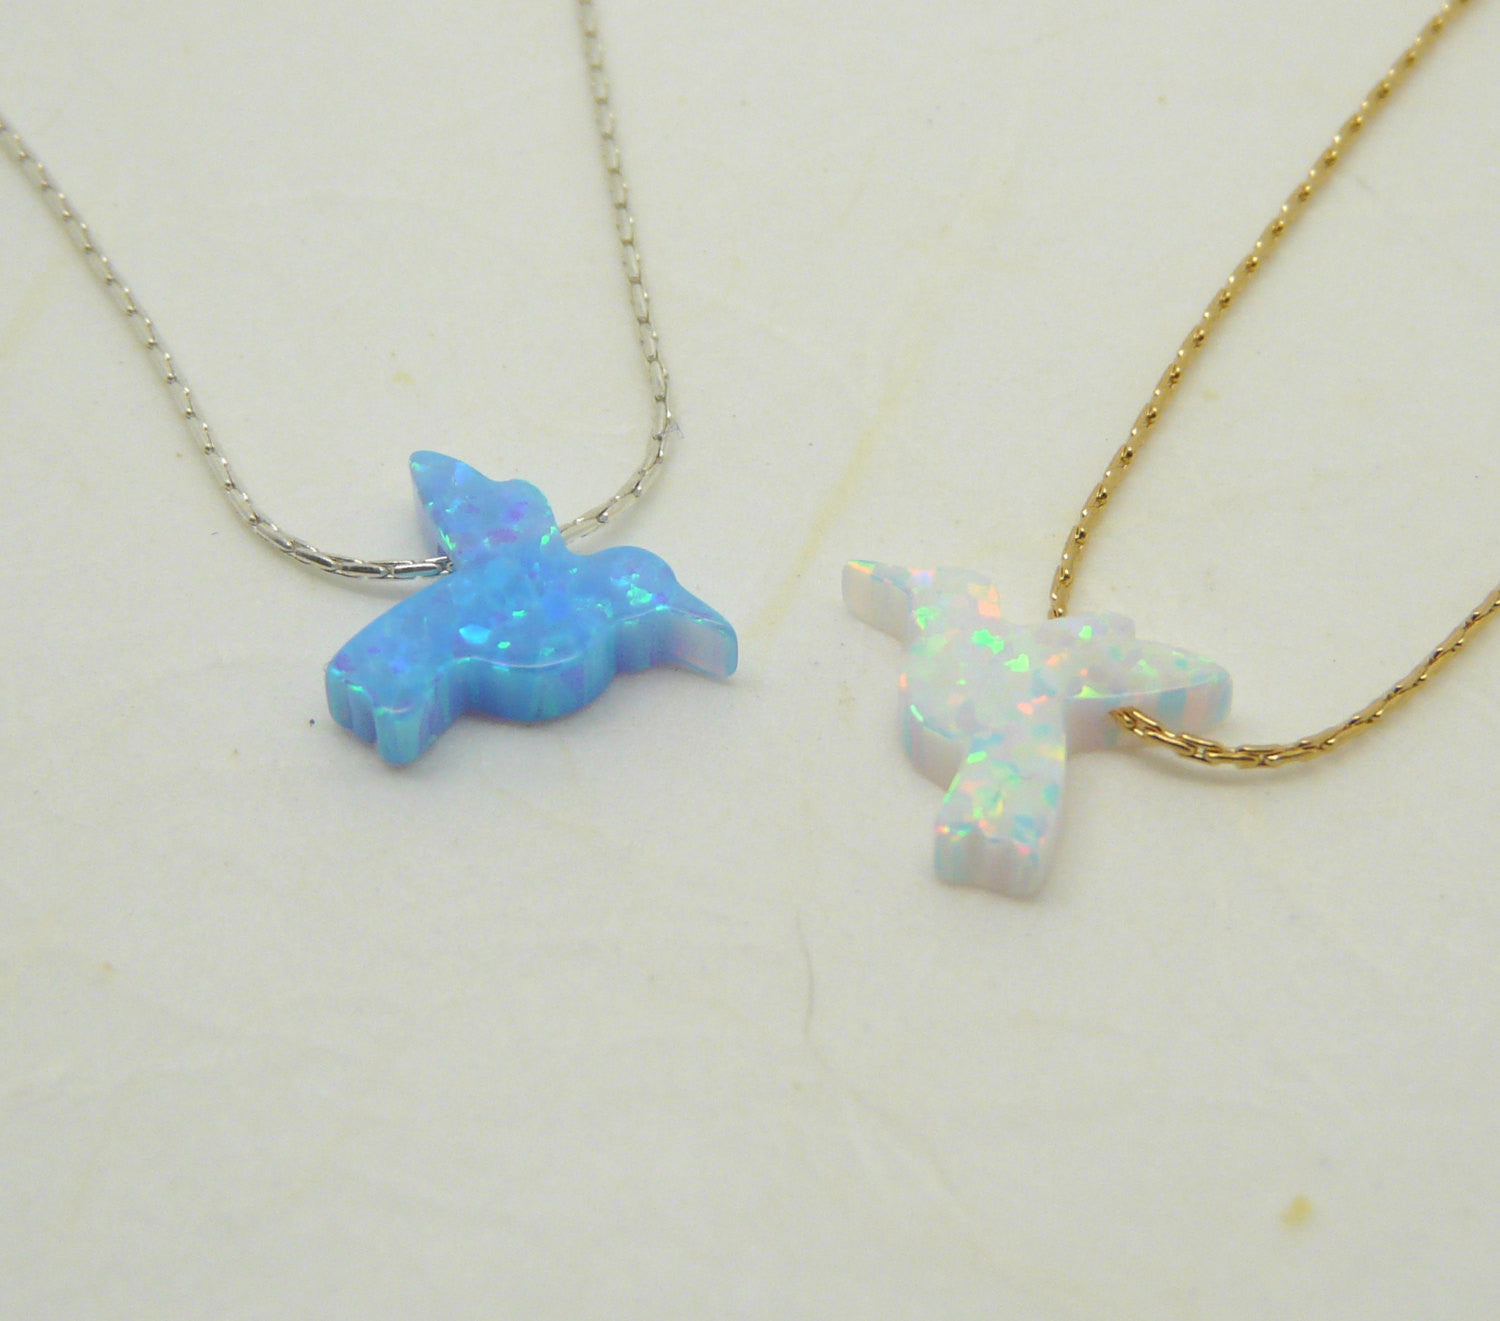 Opal bird necklace - OpaLandJewelry